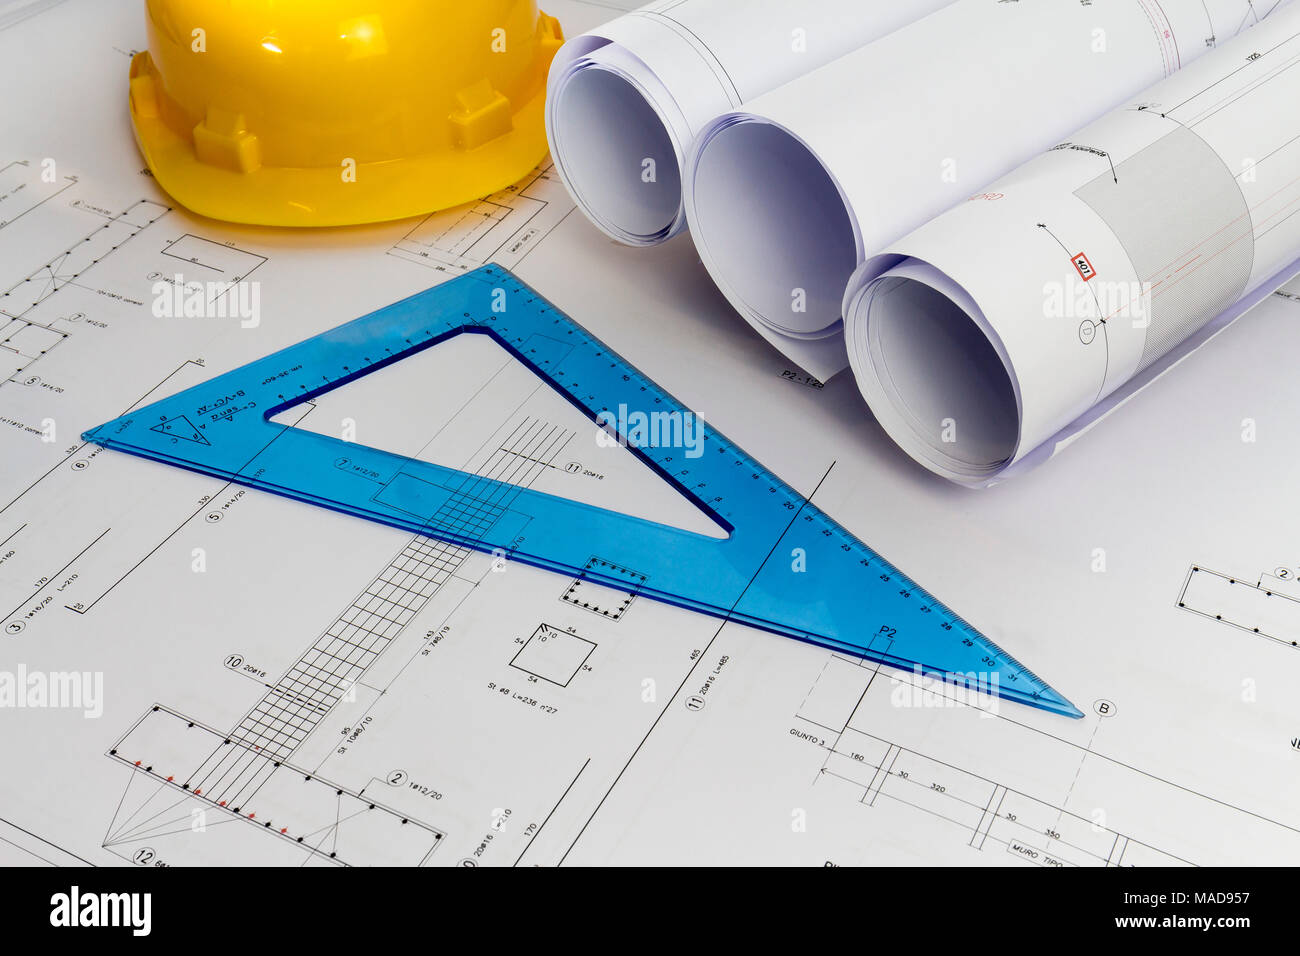 Building design: Office desk with project drawings - Stock Image